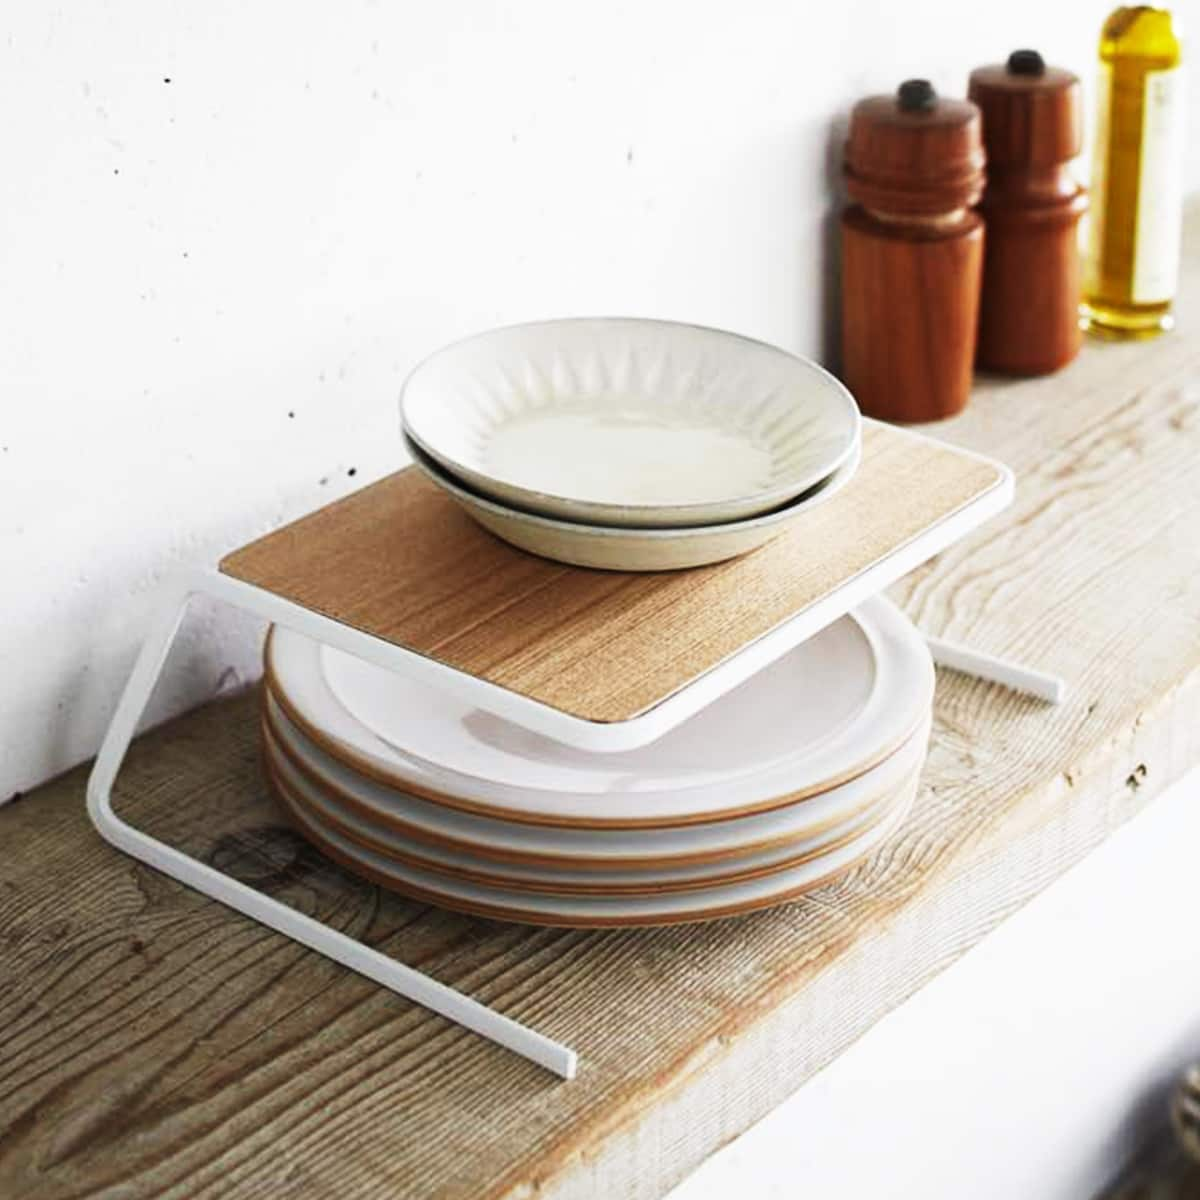 10 of Our Favorite Kitchen Organizers for Spring: gallery image 2